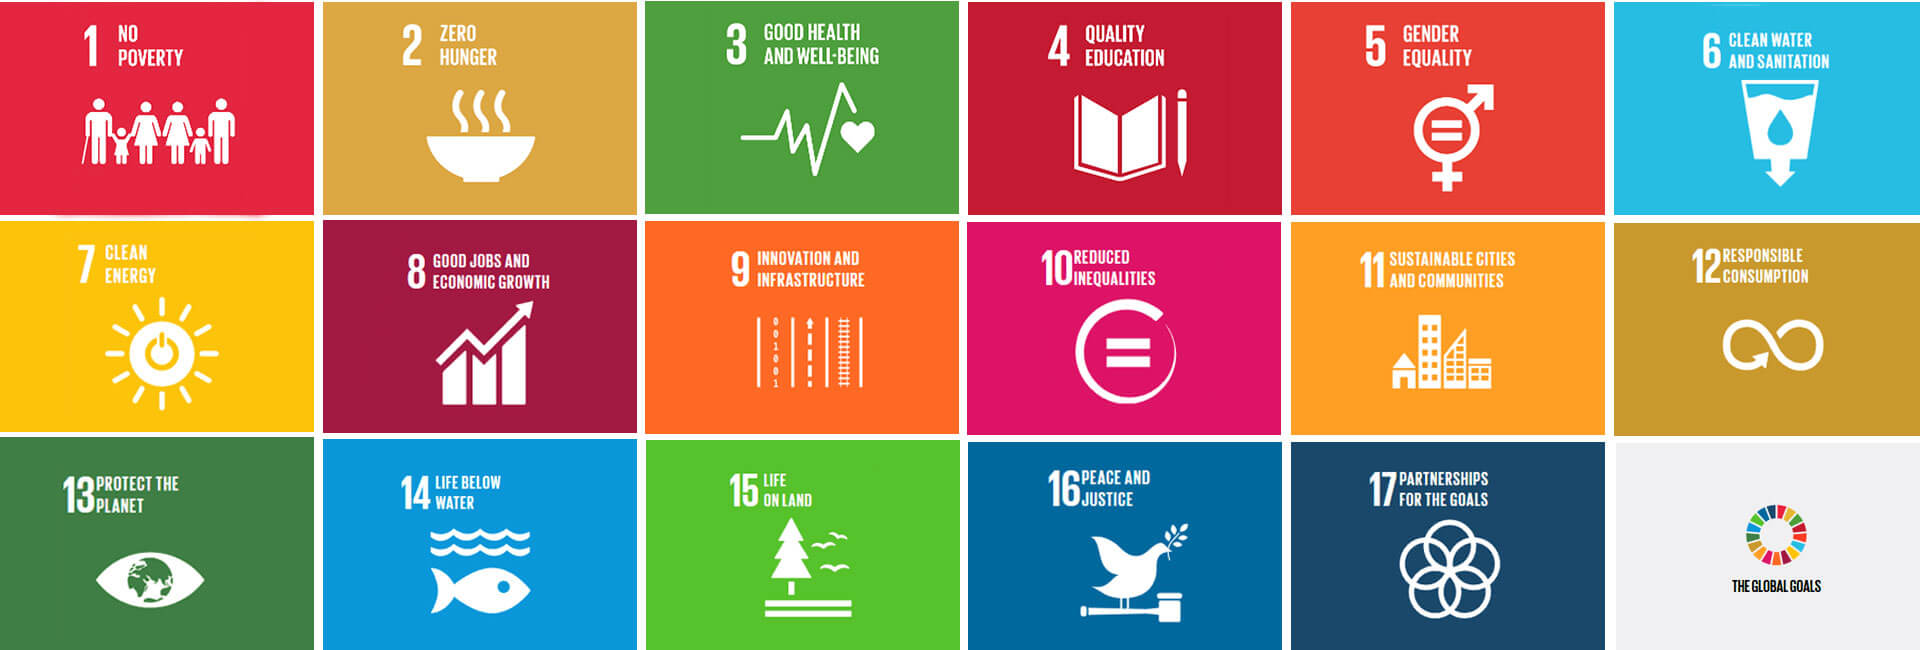 UN Sustainable Development Goals: List of organizations that you can support